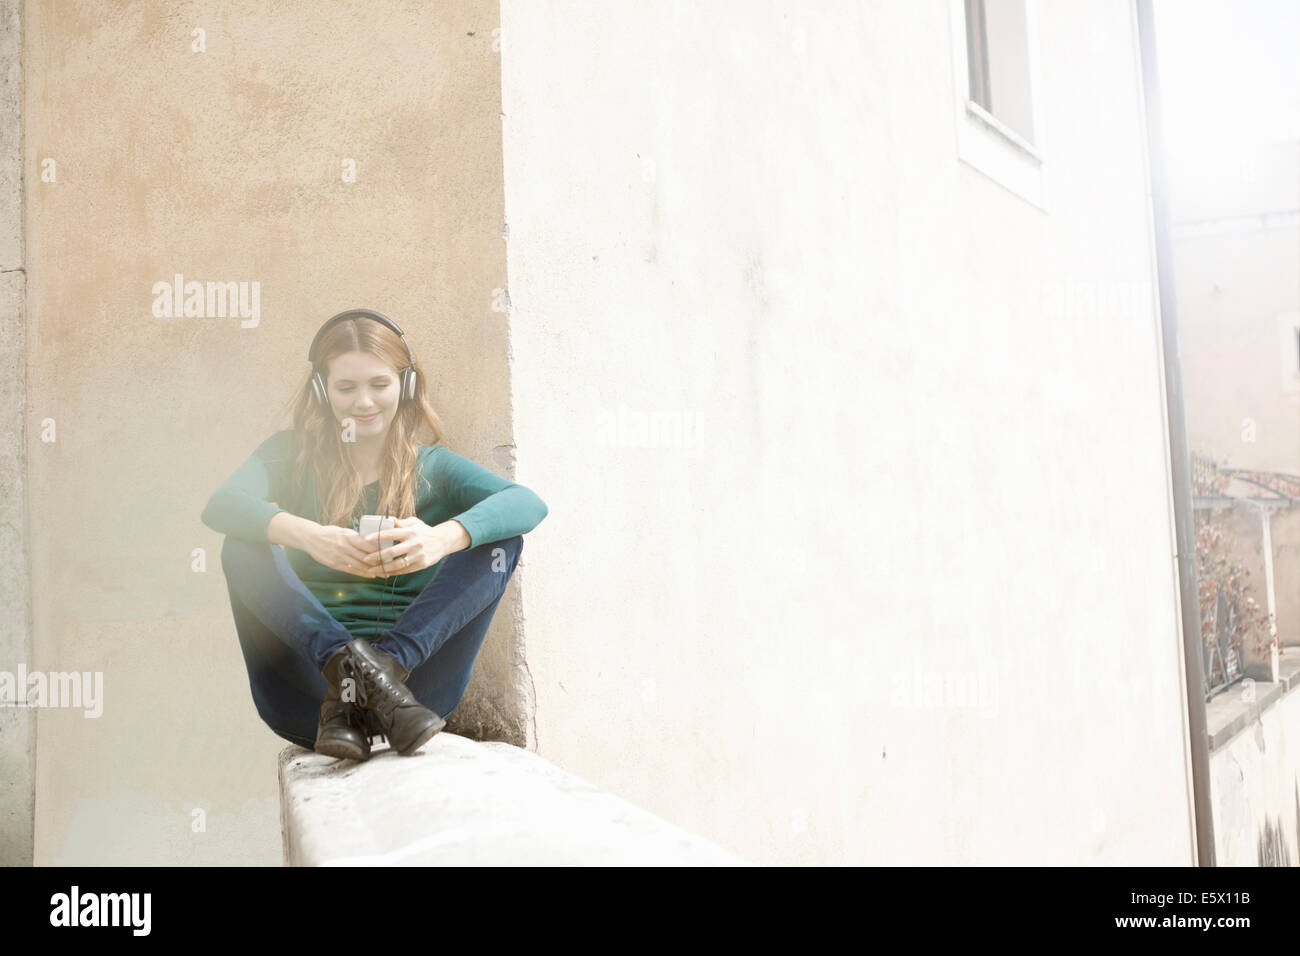 Young woman sitting cross legged listening to music through headphones - Stock Image